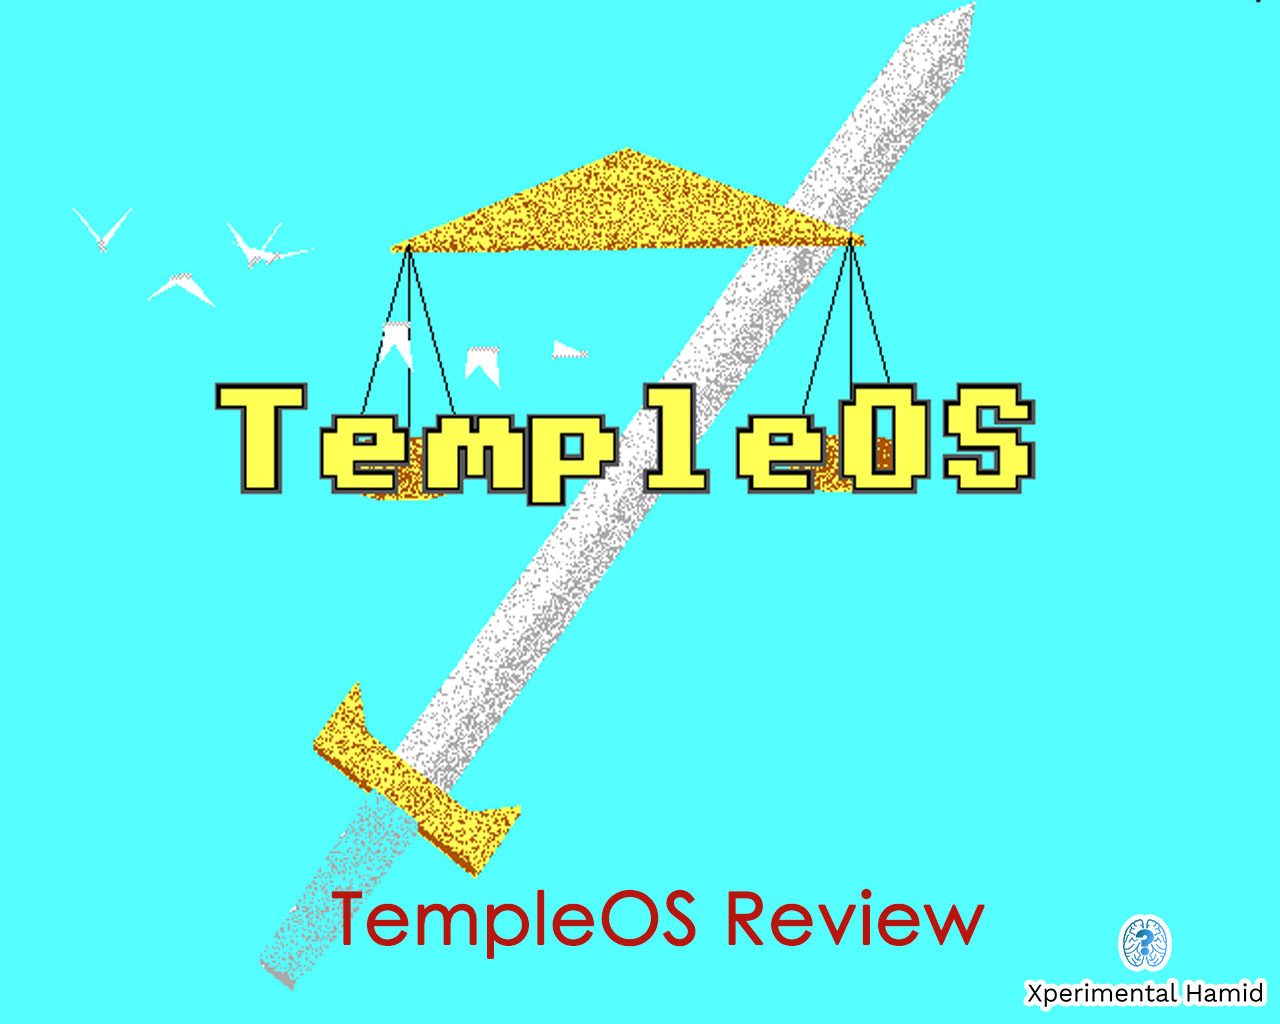 templeos review 2020